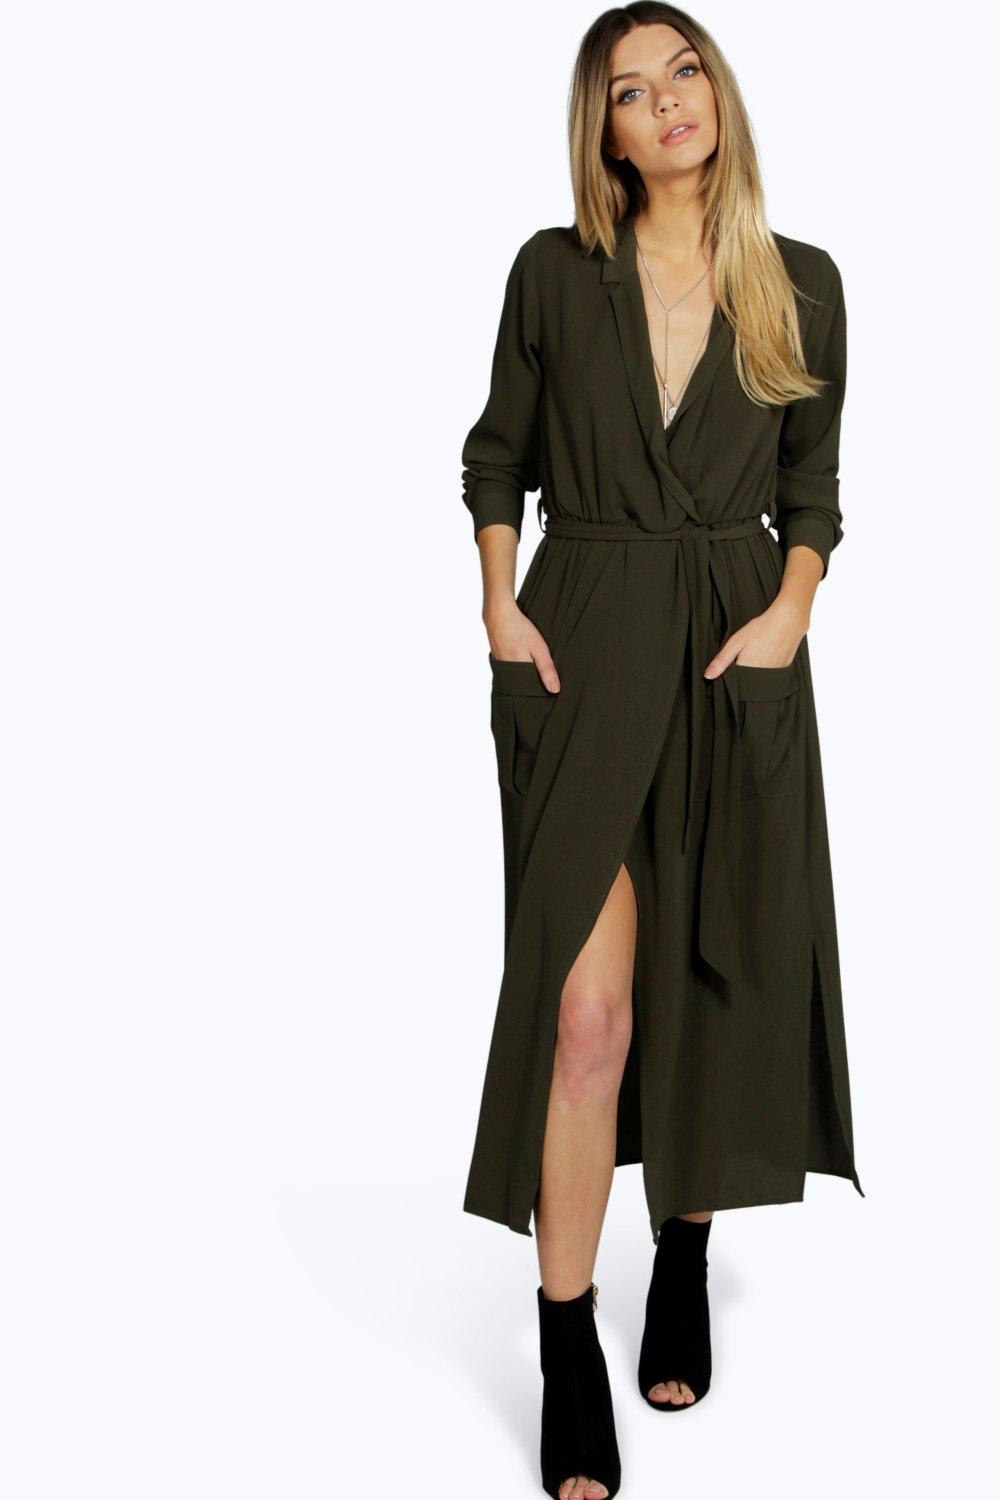 Because shirt dresses are so versatile and flattering from the moment you put them on they work well for casual and professional engagements alike. Just accessorize thoughtfully and wear them with jewelry and shoes that make sense for the occasion.